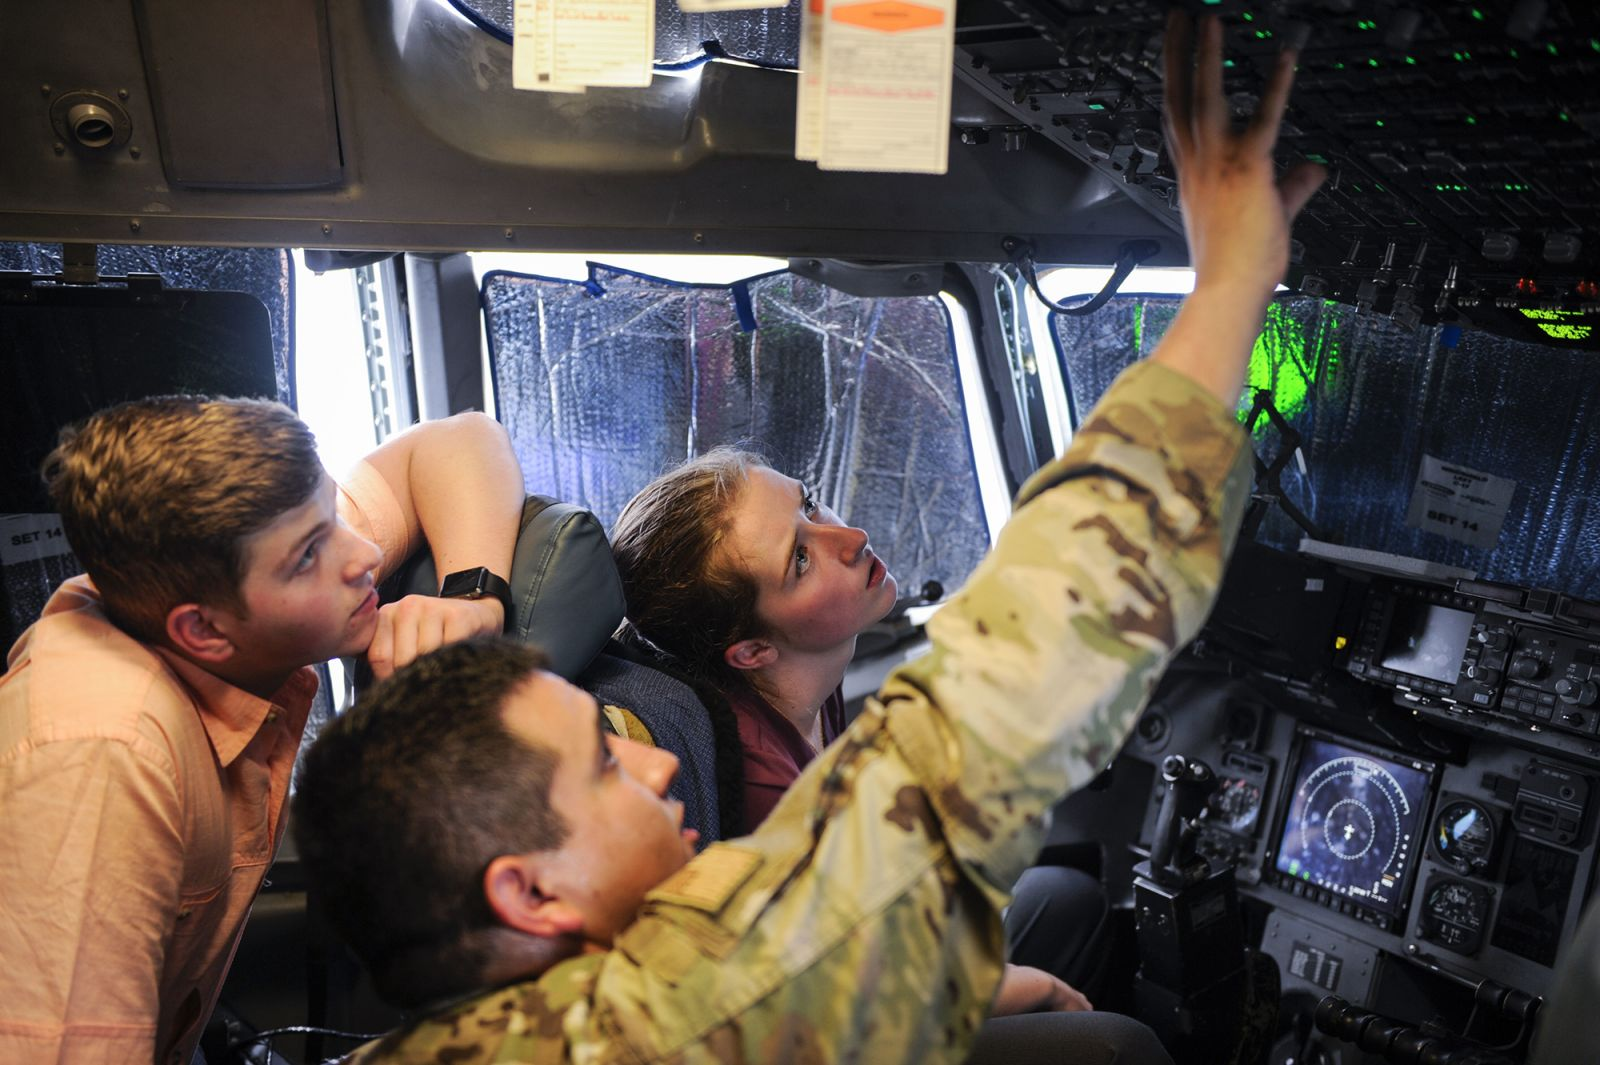 Senior Airman Ulises Zamora (center), a crew chief assigned to the 437th Aircraft Maintenance Squadron, explains some of the controls used on a C-17 Globemaster III to interns Aleric Stell (left) and Emma McBride. (Photo/Senior Airman Thomas T. Charlton for the Air Force)